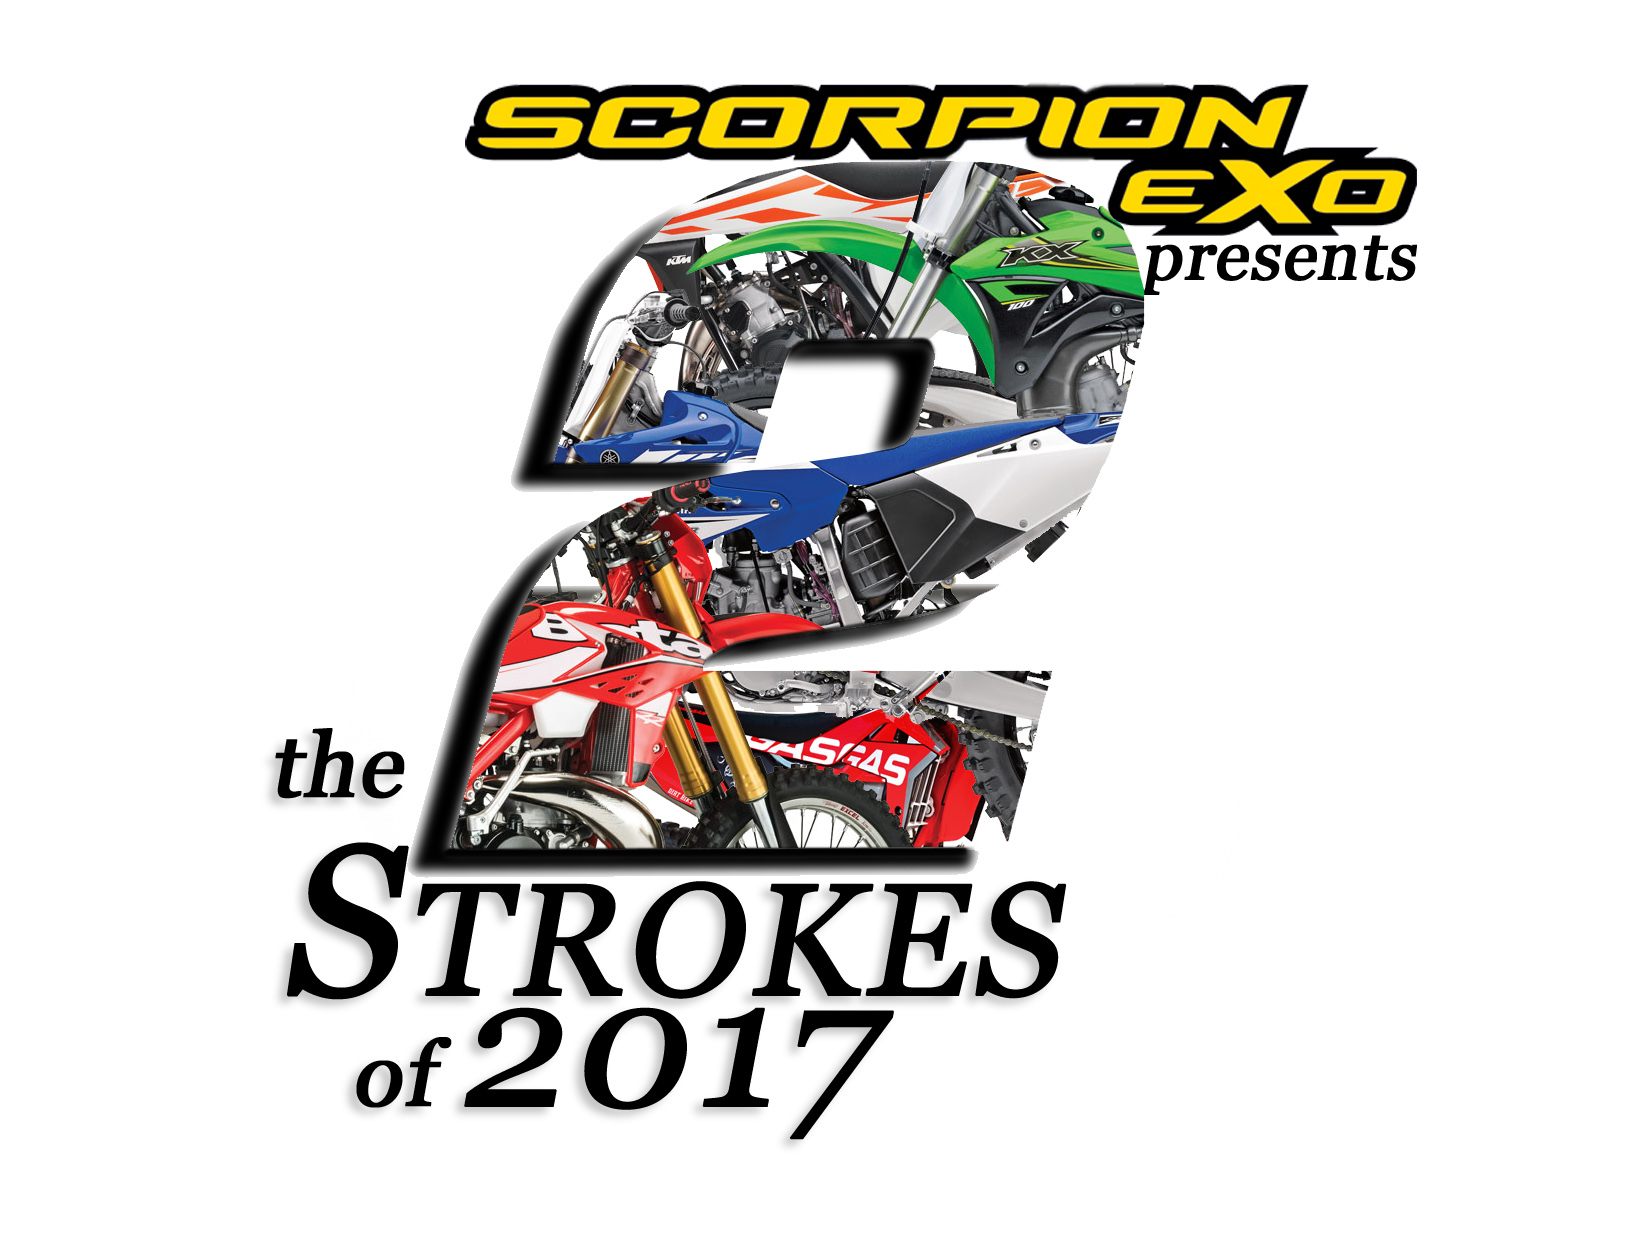 Two stroke tuesday del amo motorsports cr250r dirt for Del amo motor sport